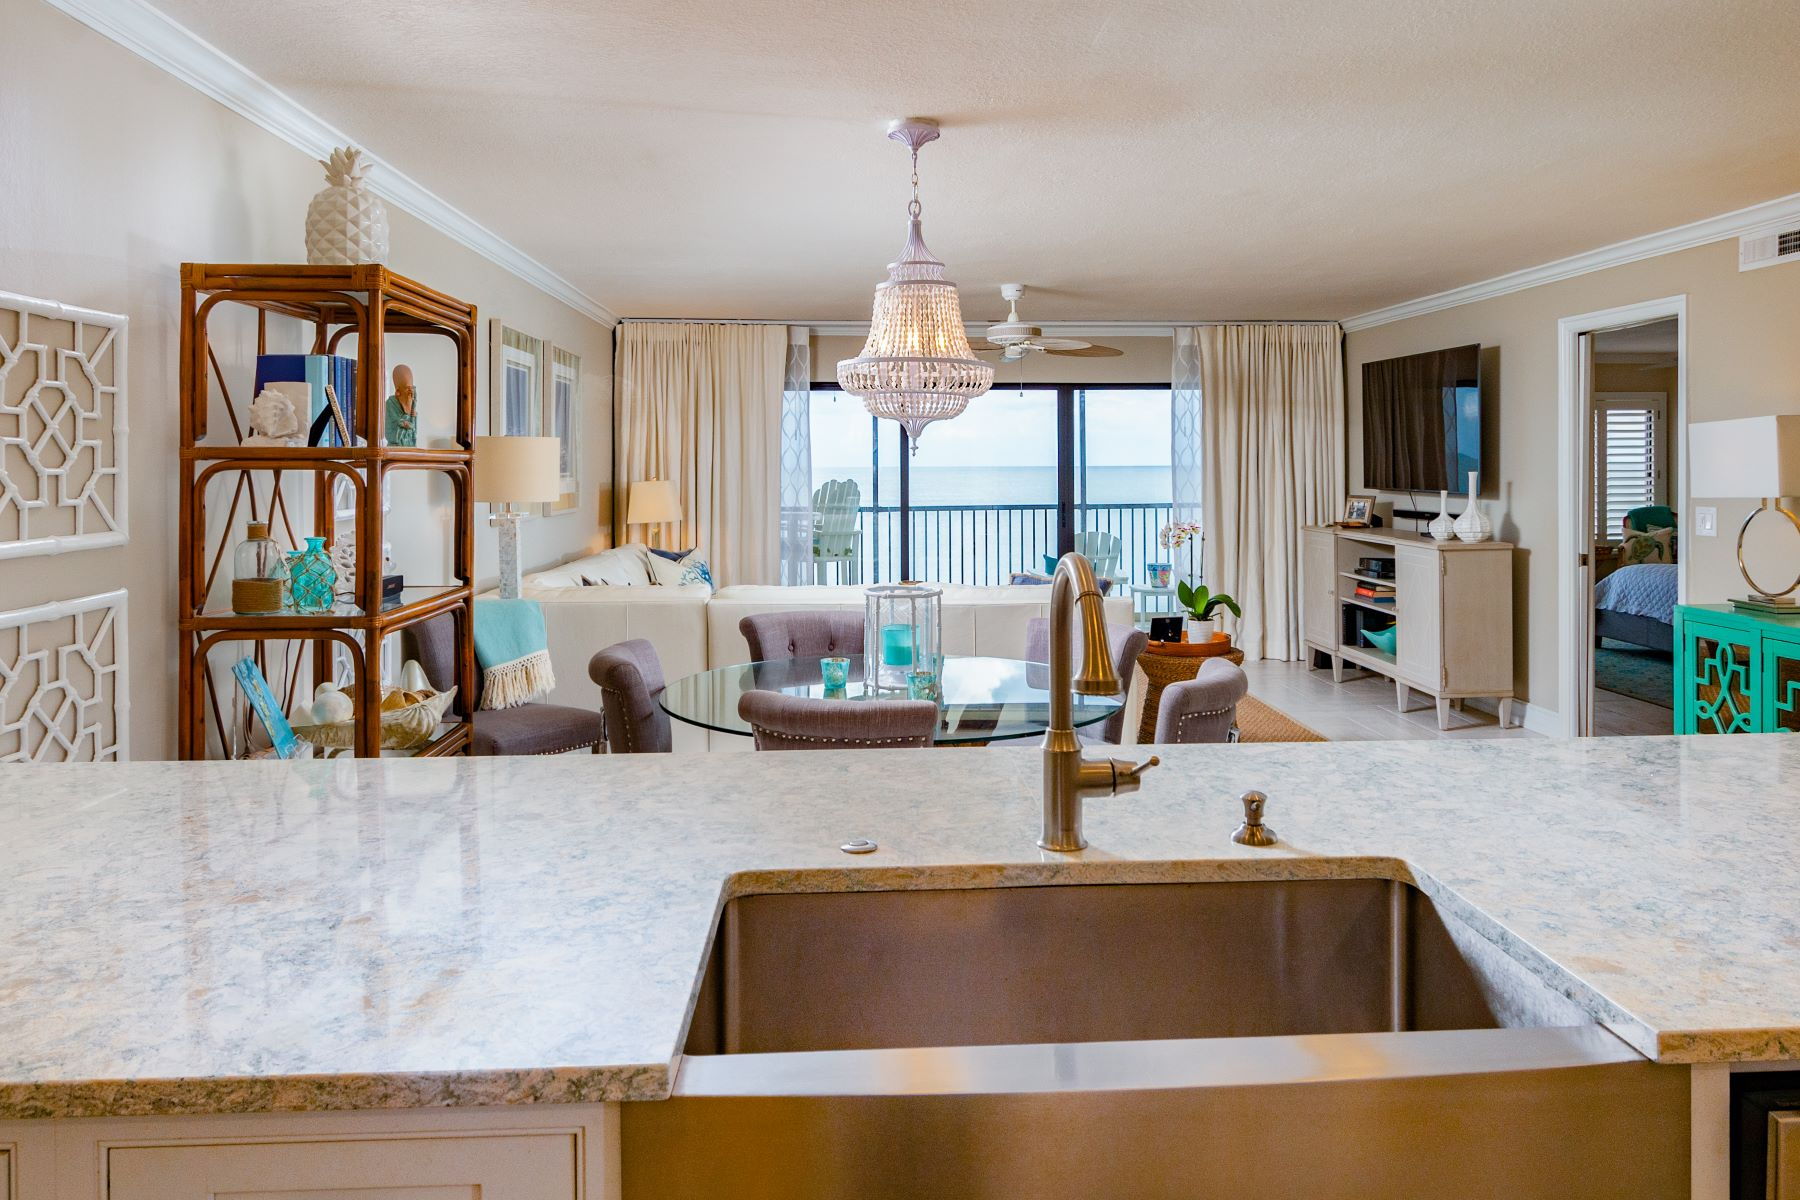 Condominium for Sale at Impressive Direct Oceanfront Condo With Tasteful Finishes in Sterling House 6307 S Highway A1A Unit 242 Melbourne Beach, Florida 32951 United States